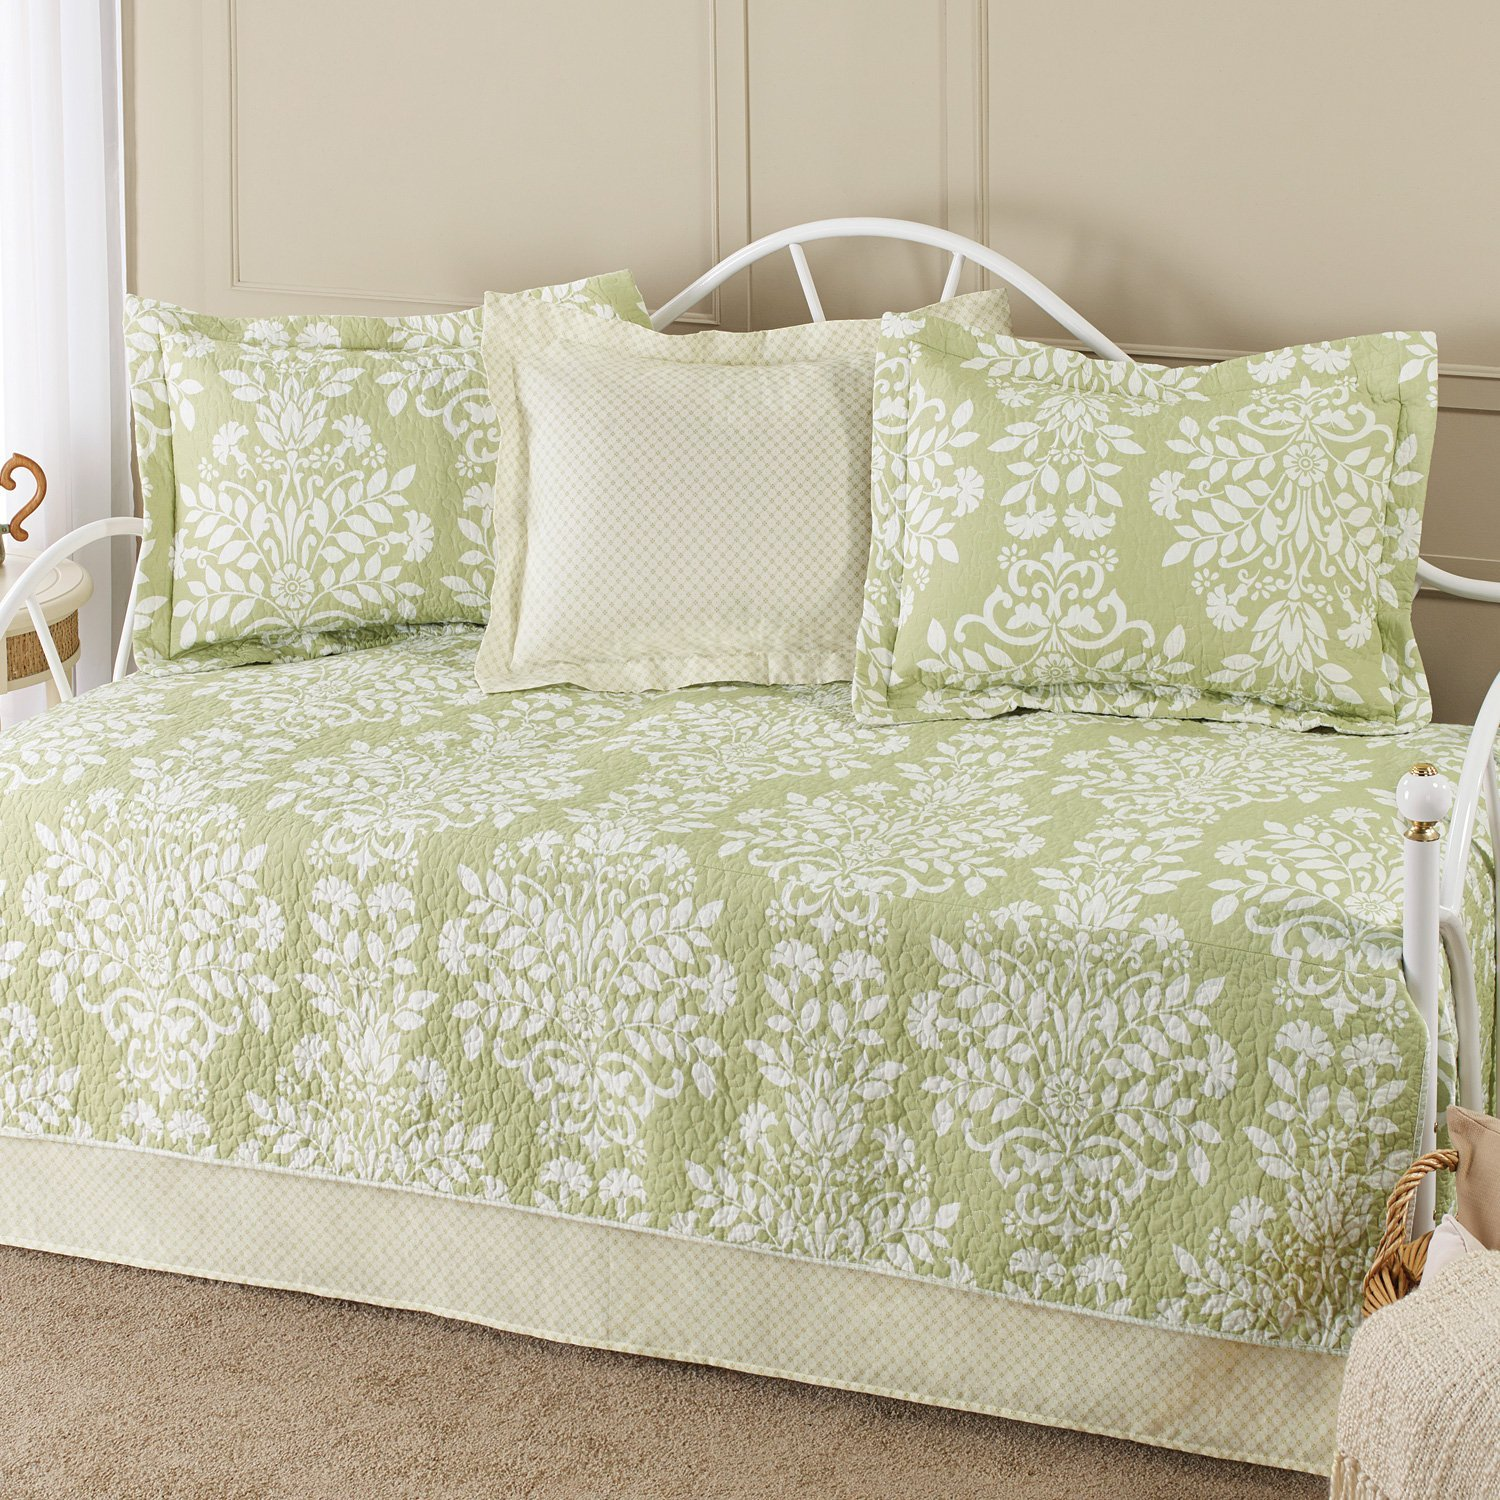 charming laura ashley bedding in olive and white floral pattern on cream rug matched with cream wall for bedroom decor ideas